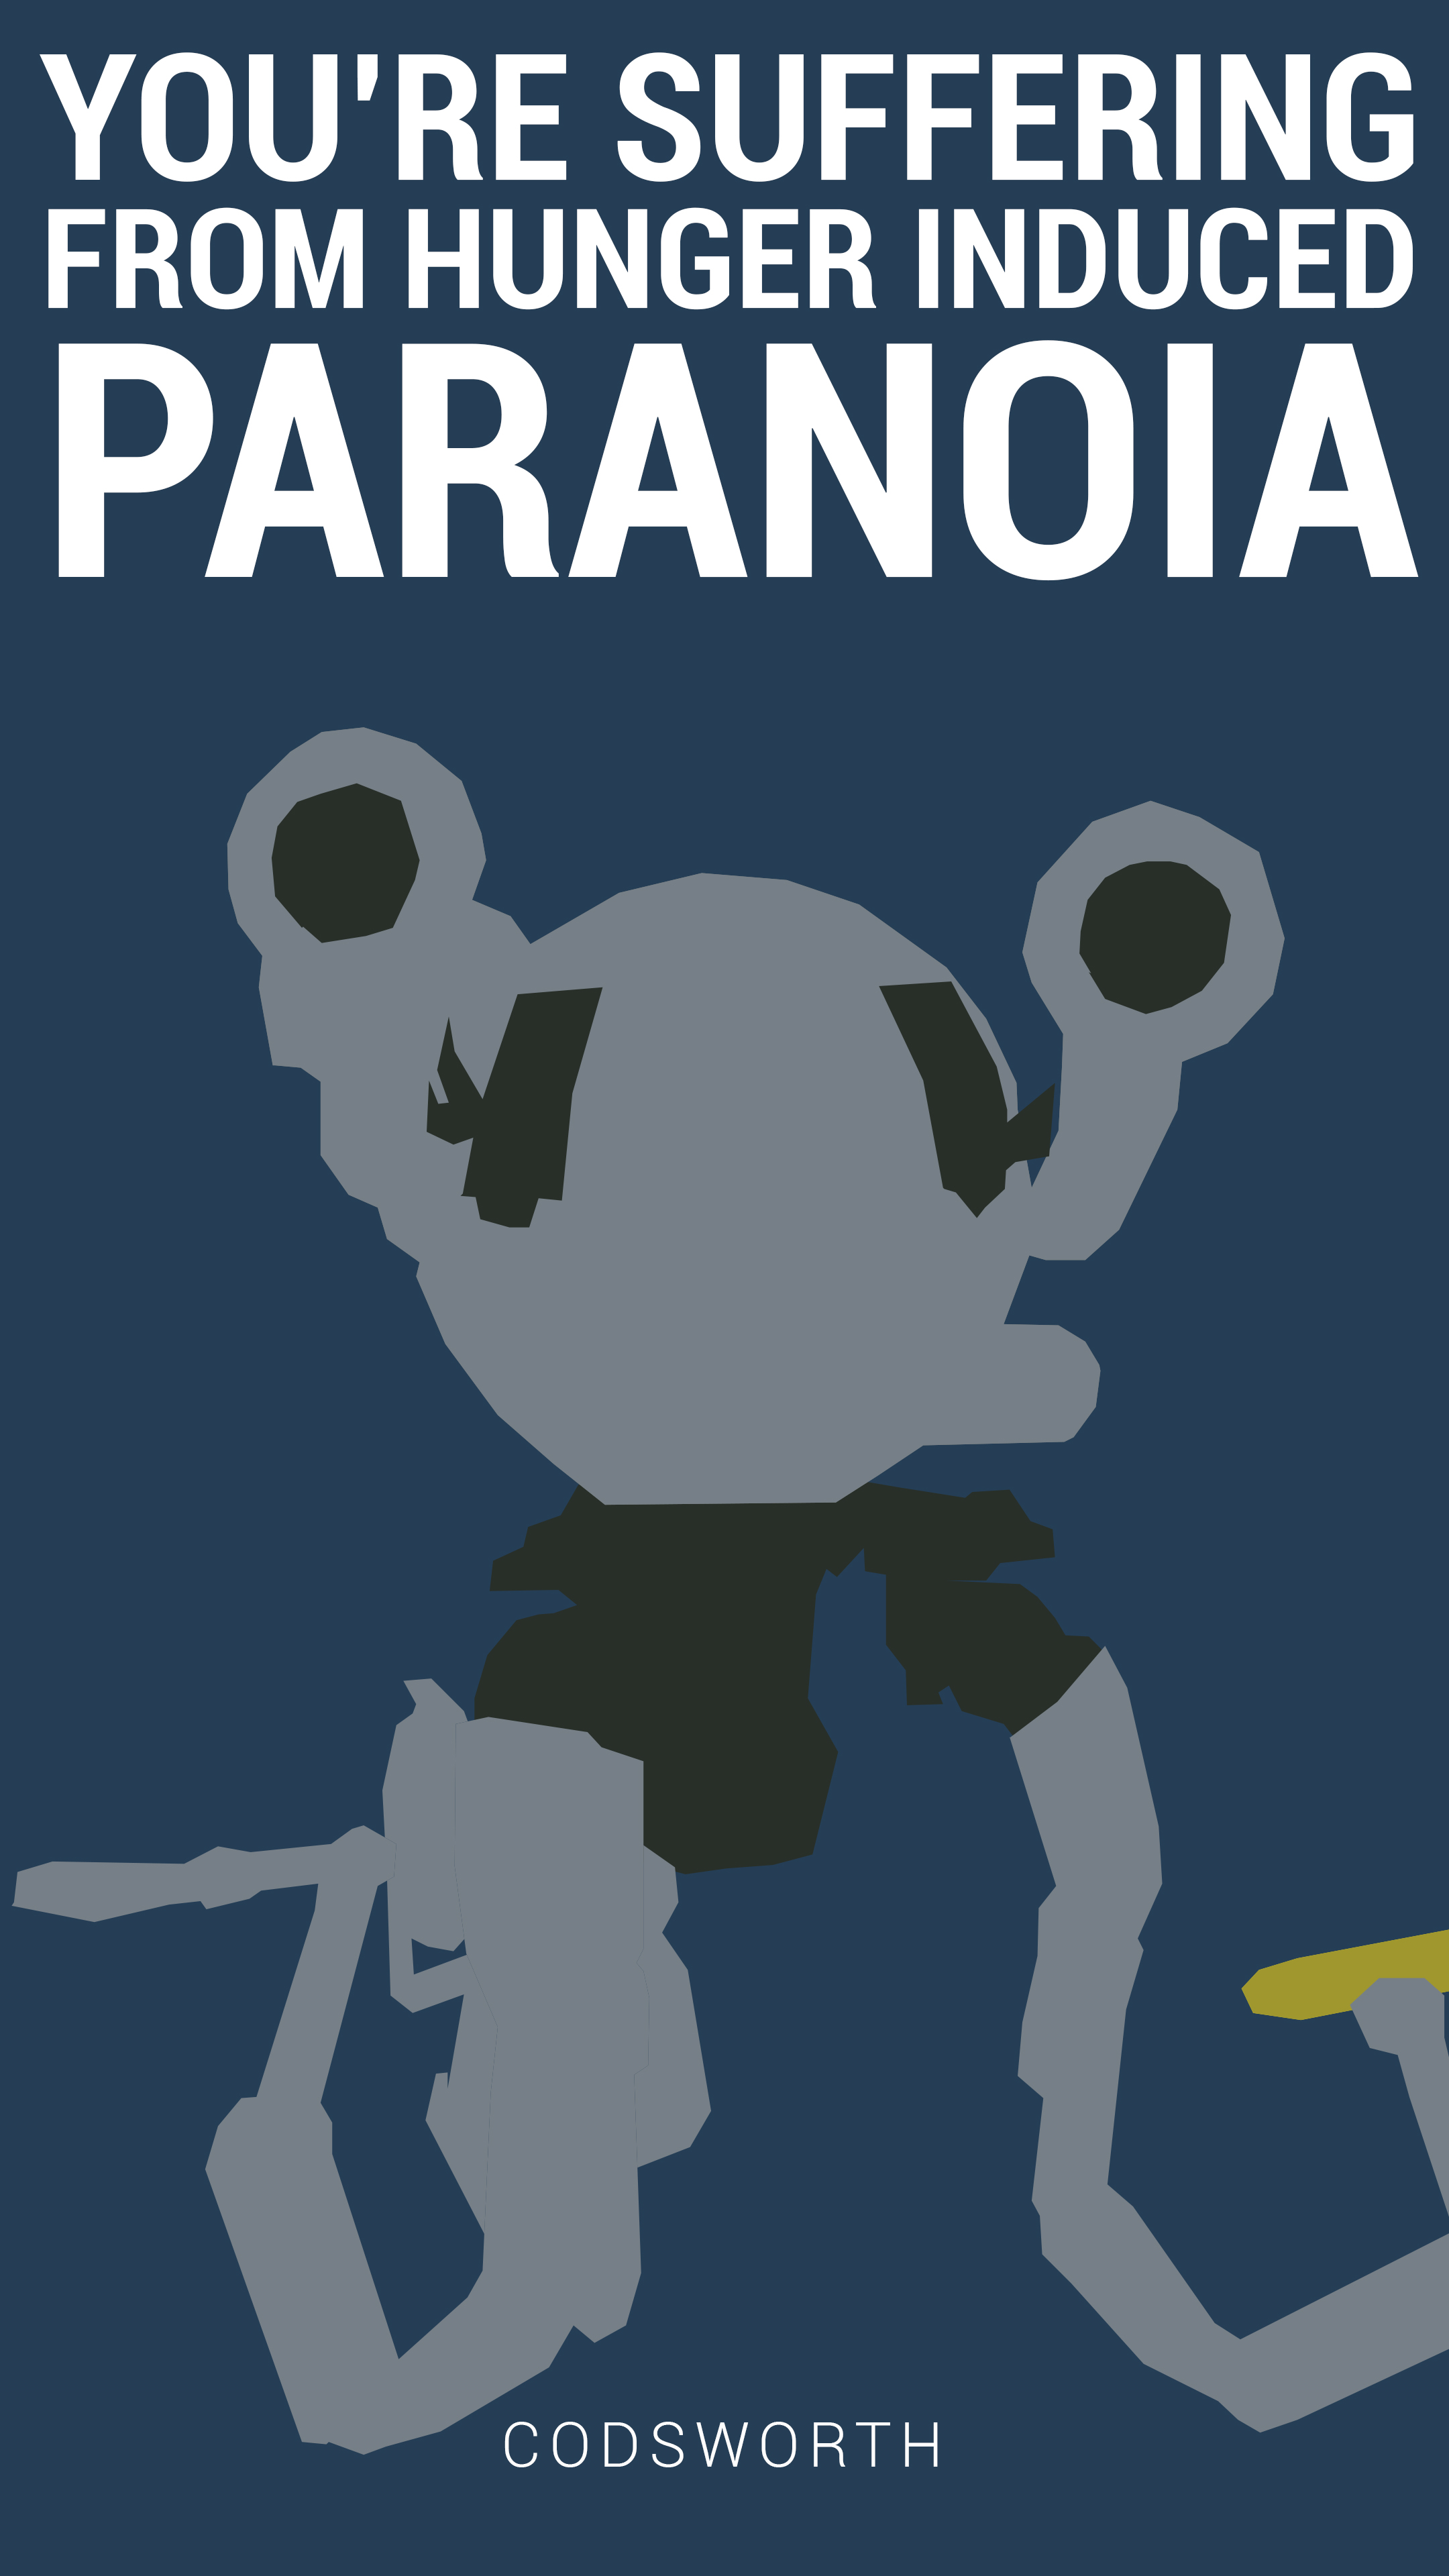 codsworth_poster1.jpg